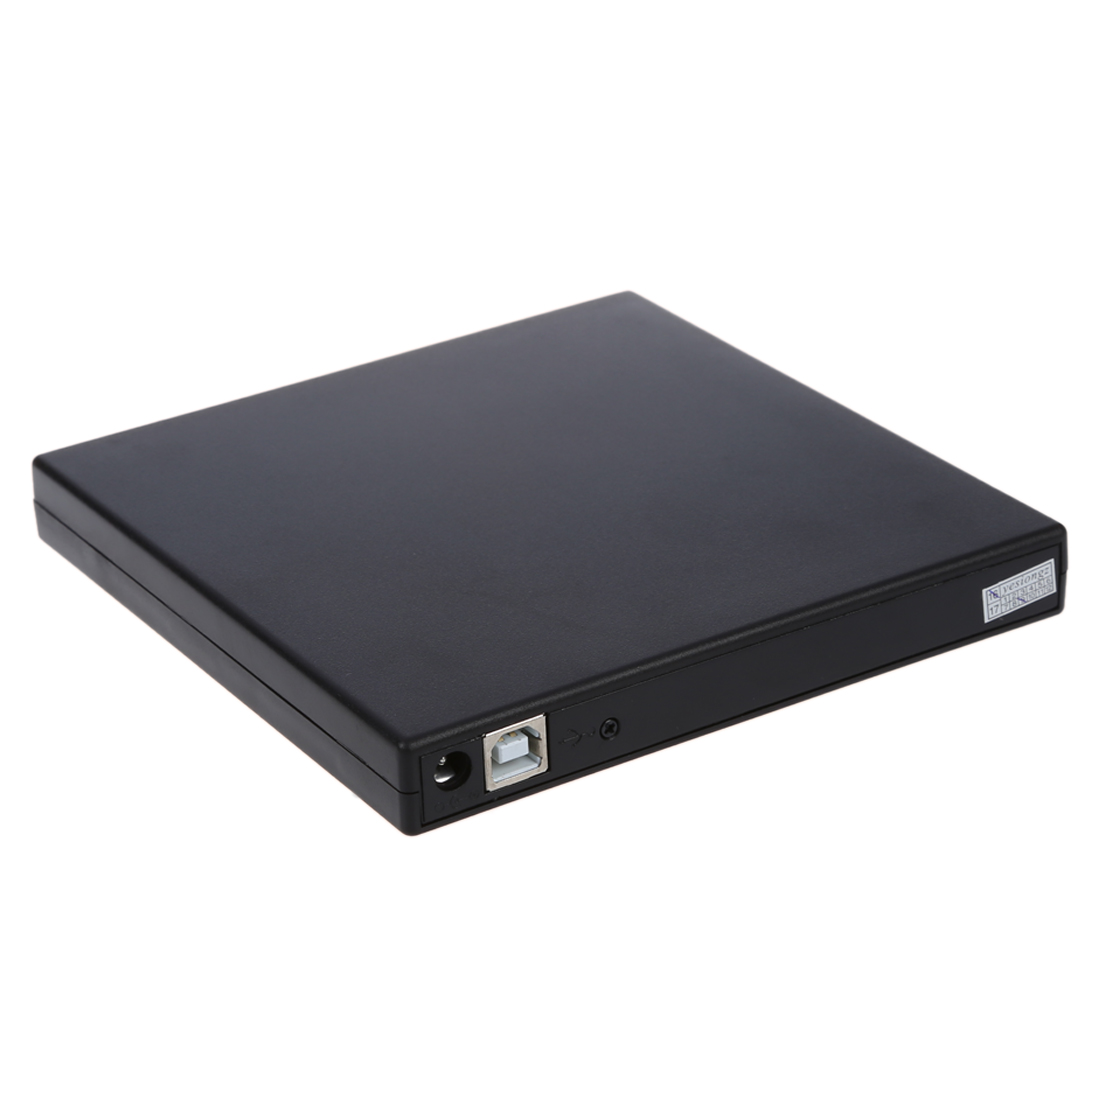 USB External Blu-ray BD-R BD-ROM Combo DVD RW Burner Drive Black bluray usb 3 0 external dvd drive blu ray combo bd rom 3d player dvd rw burner writer for laptop computer